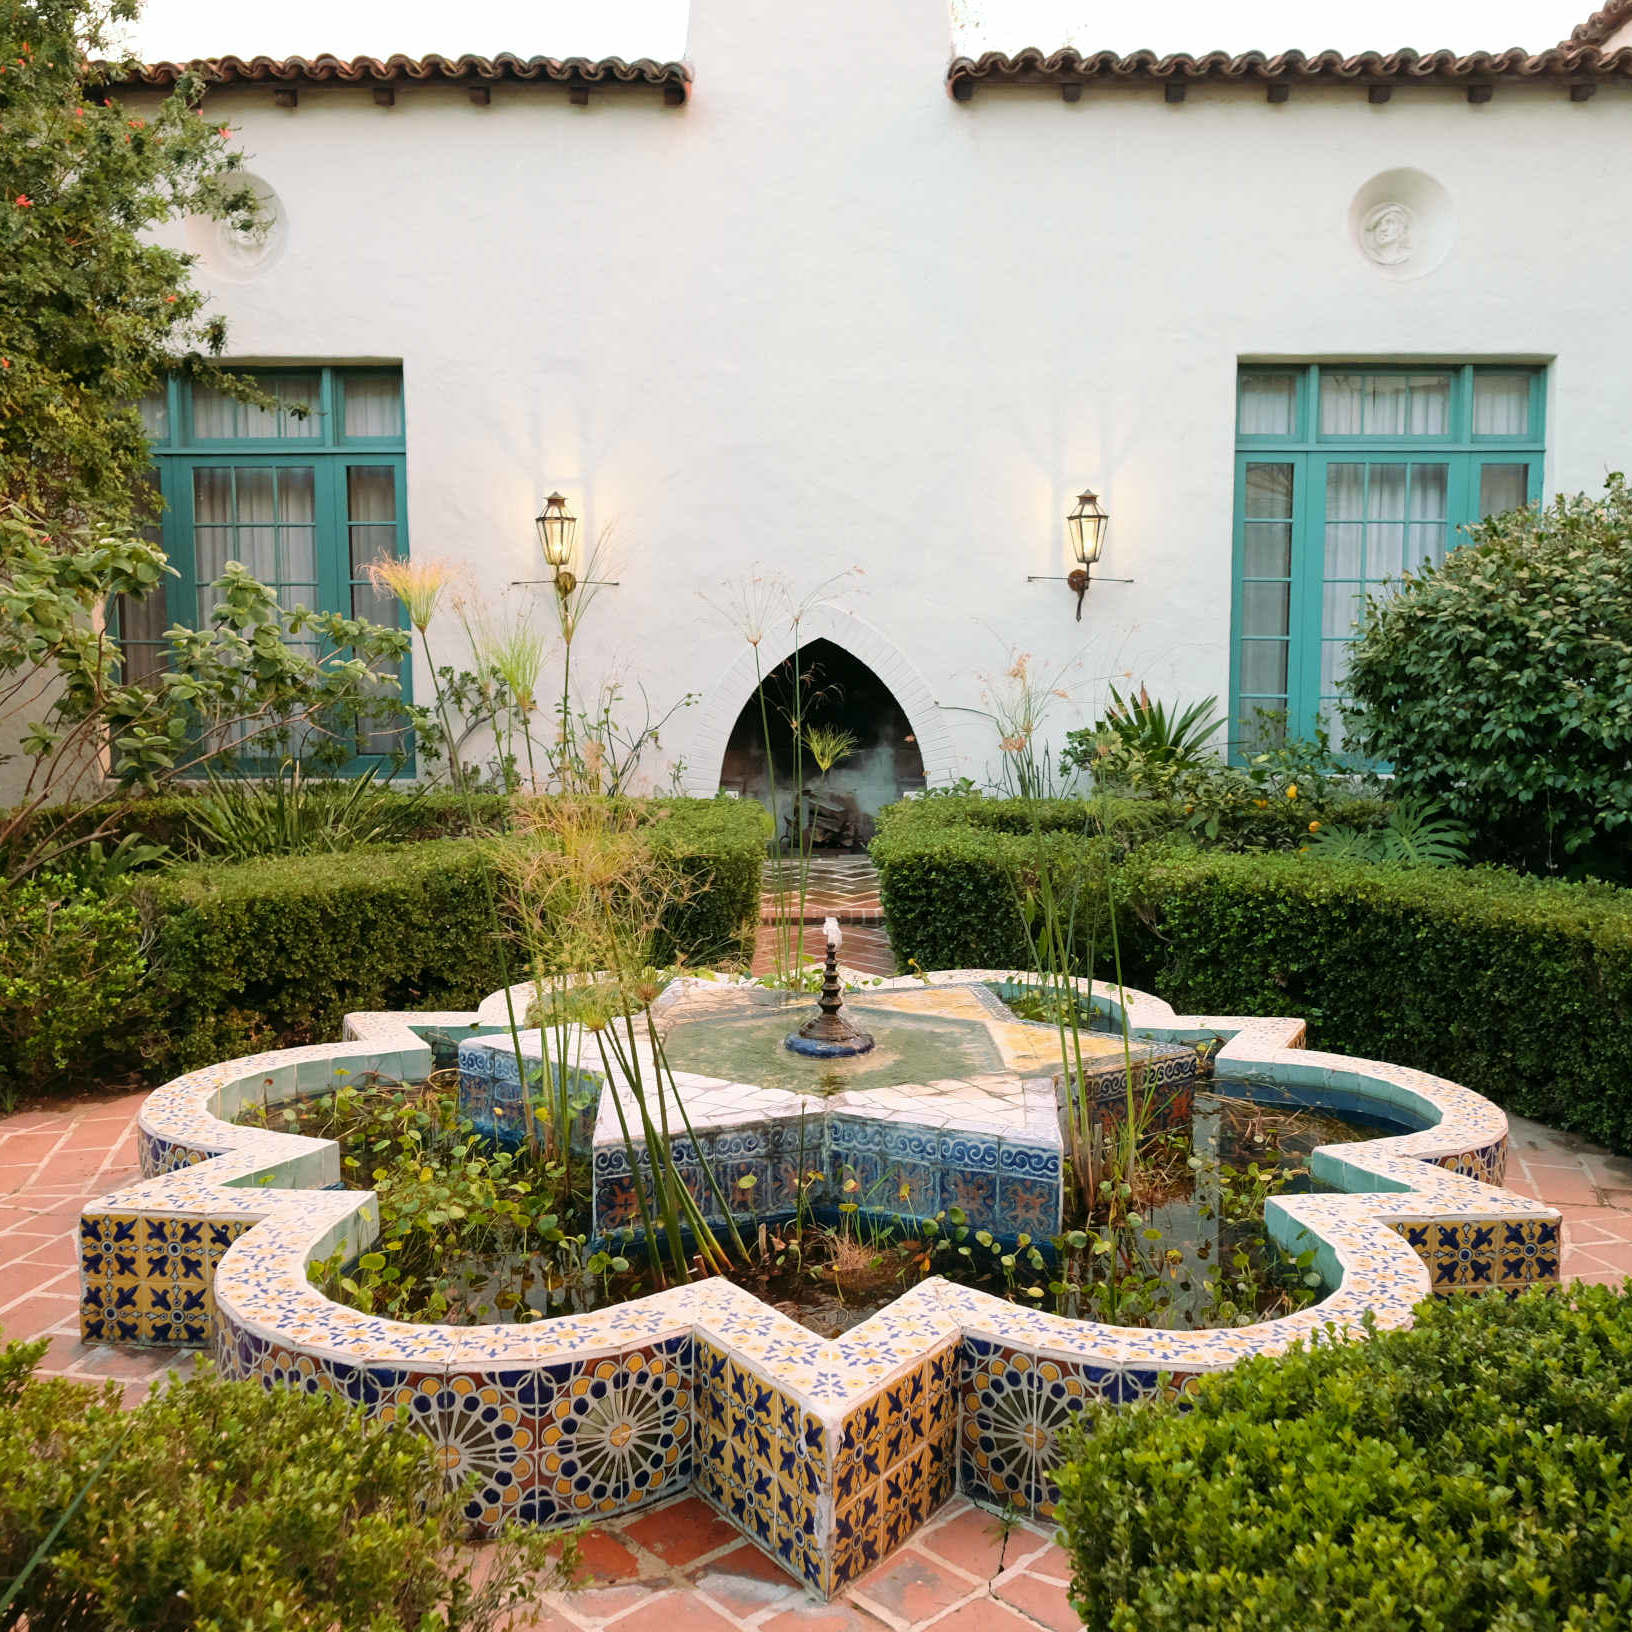 Moroccan tile fountain in Alhambra Apartments courtyard with turquoise windows